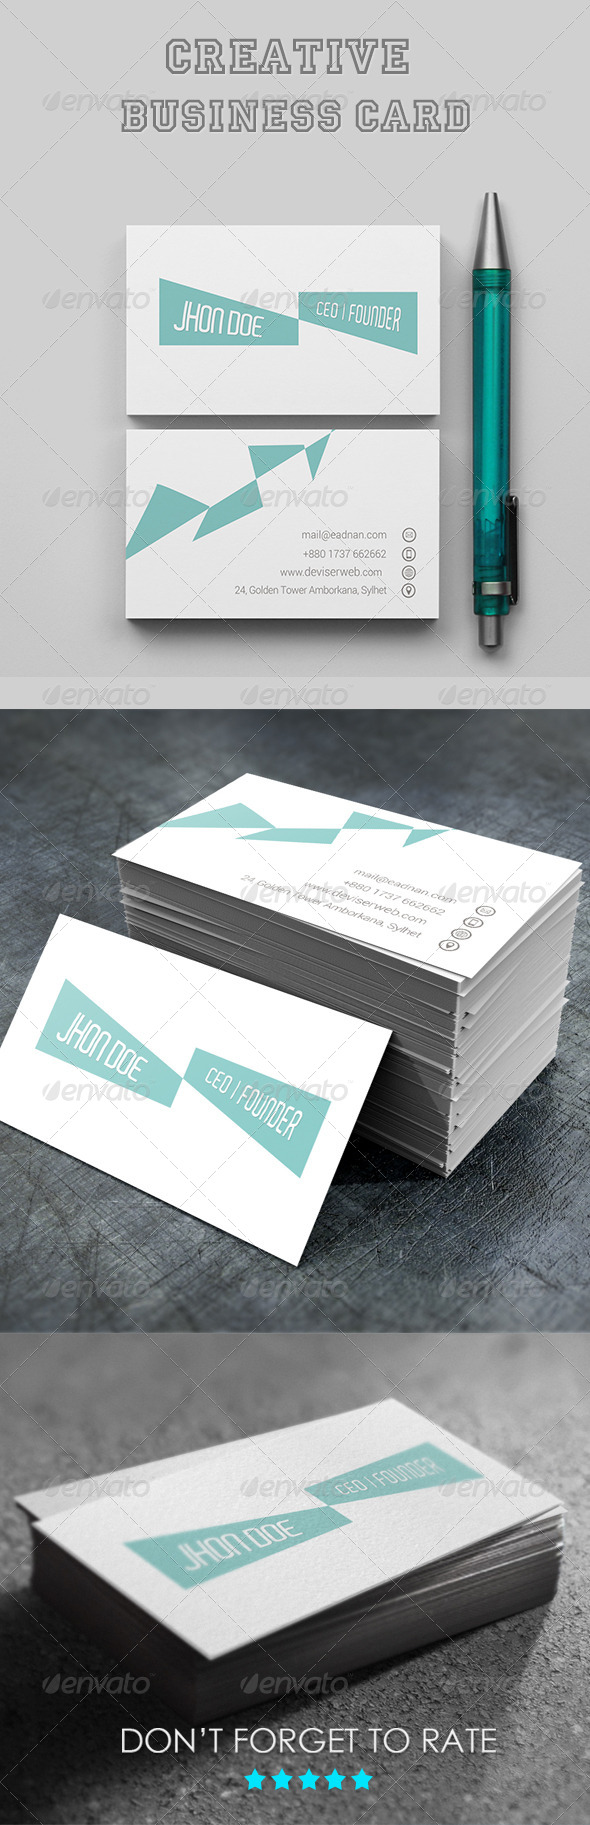 GraphicRiver Creative Business Card 7565753